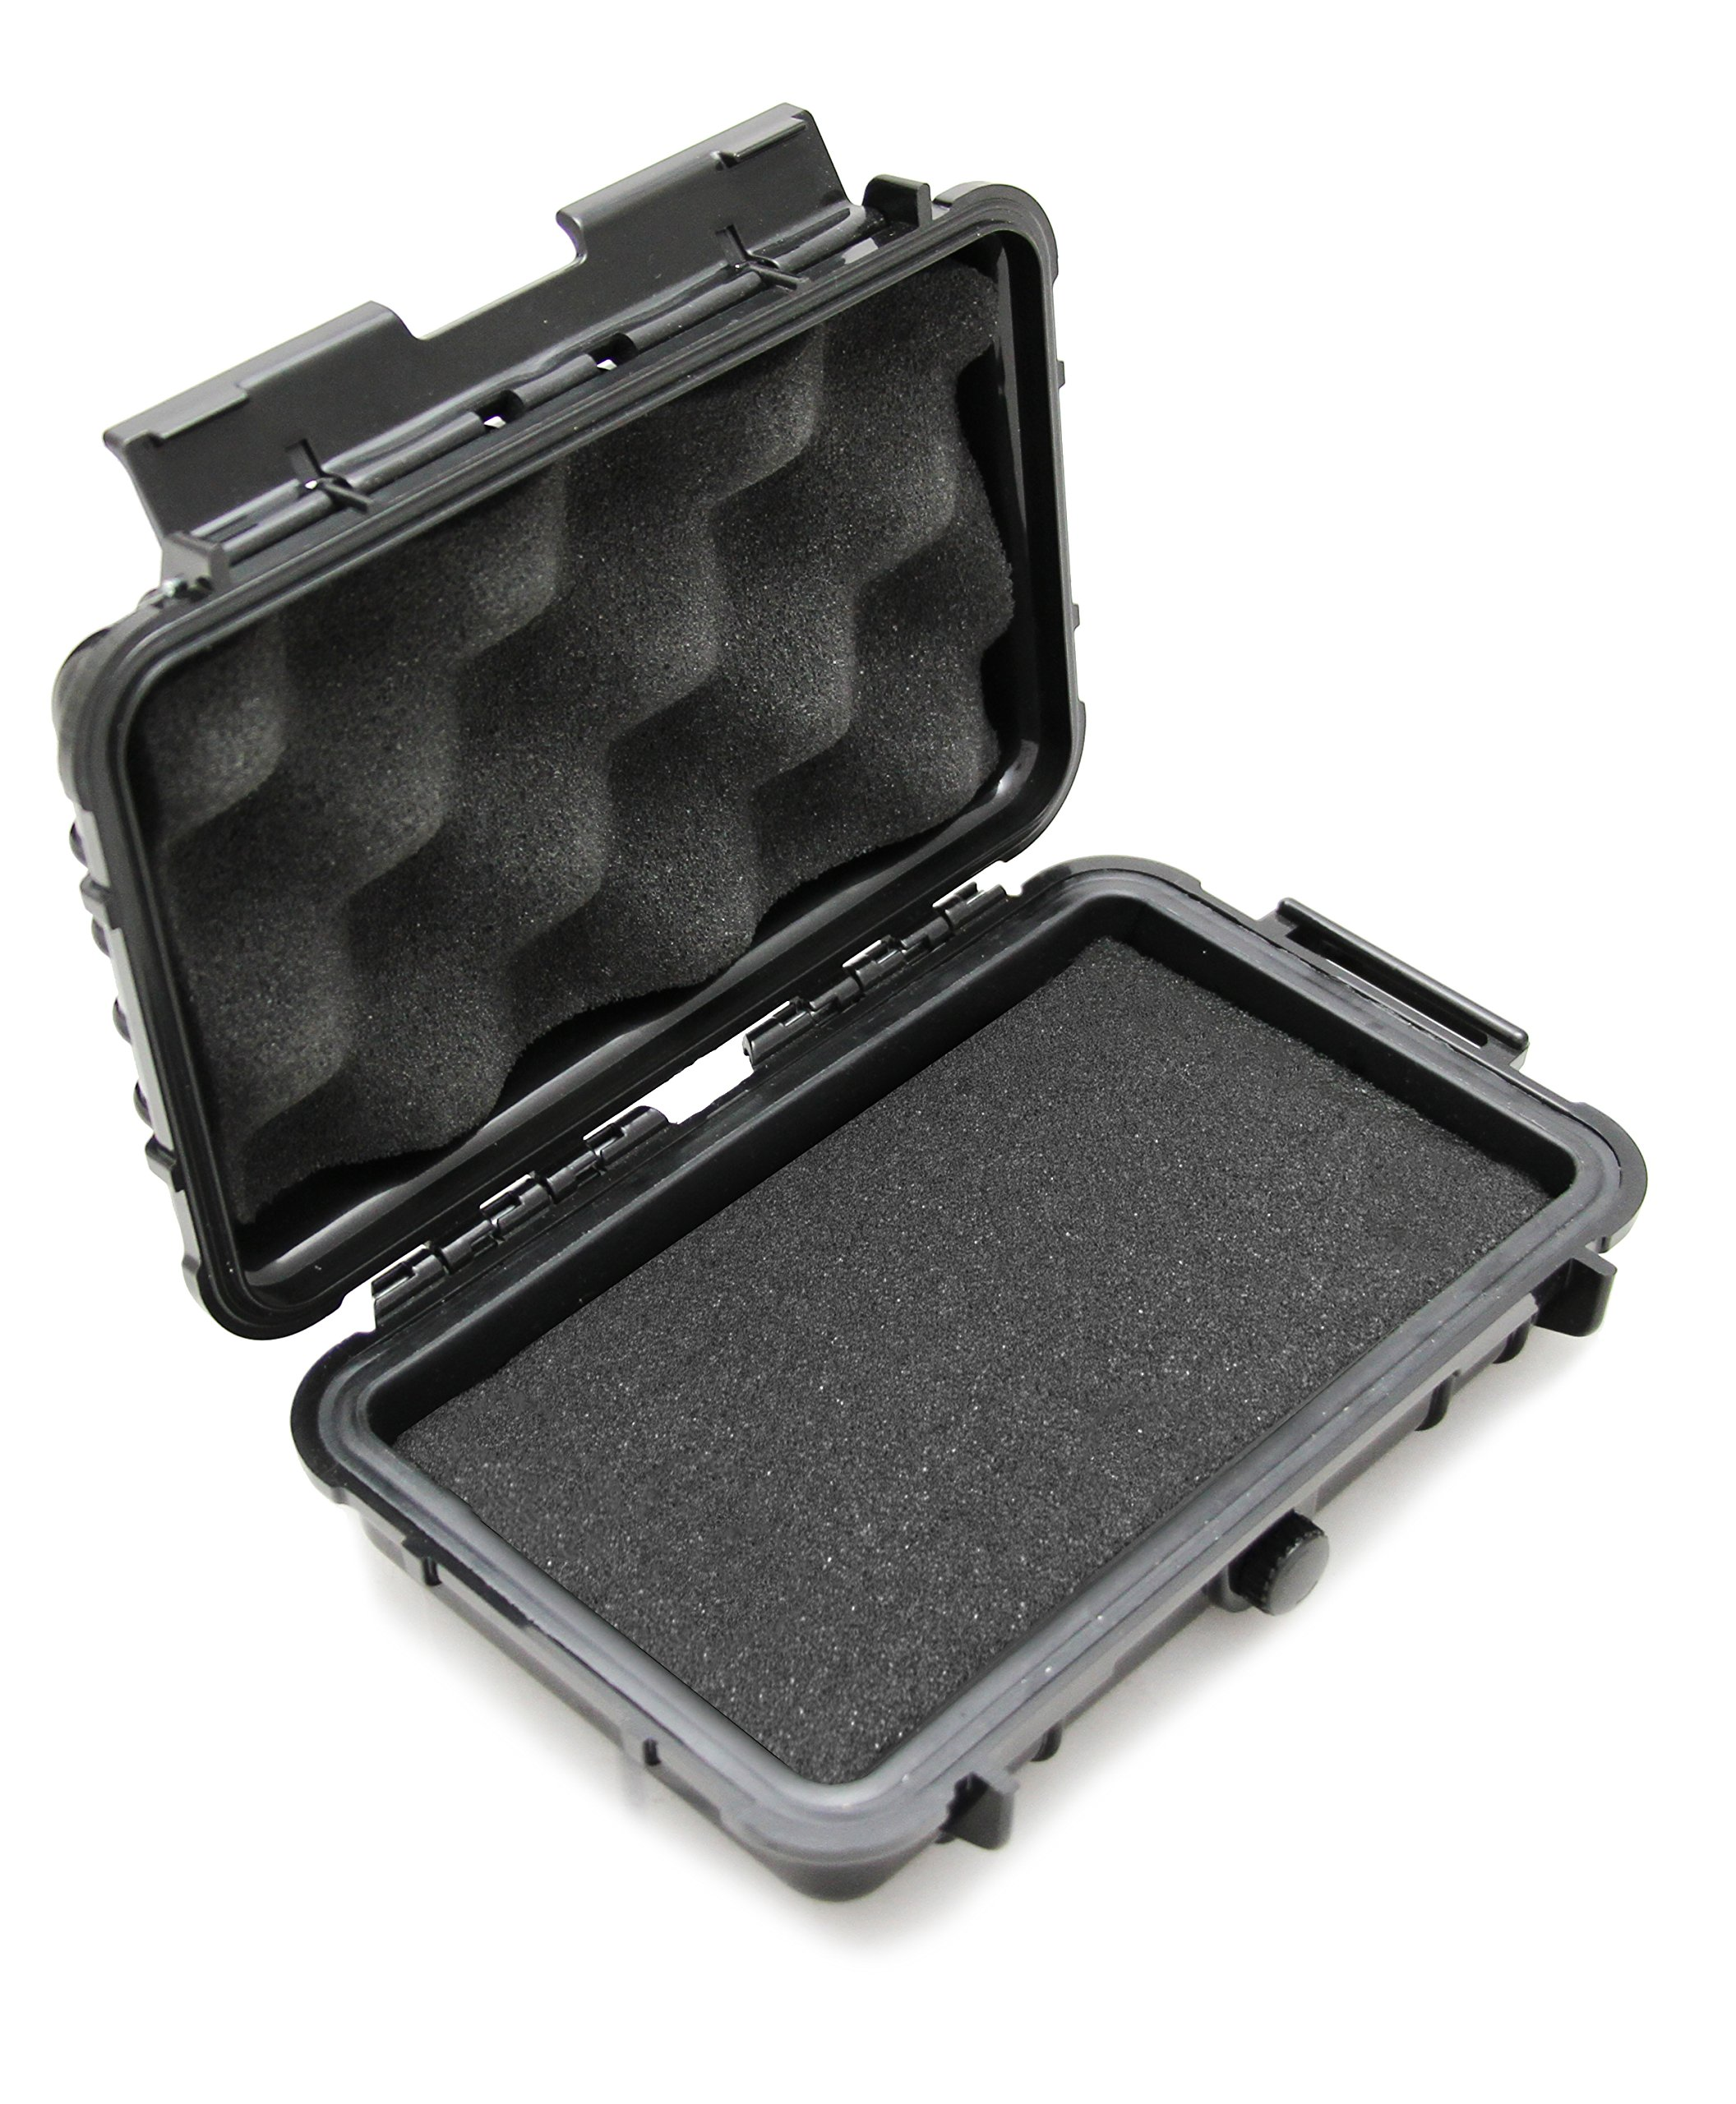 CASEMATIX Camera Case fits Canon PowerShot ELPH 180, Canon Powershot G9 X Mark II, Canon PowerShot ELPH 190 is, Elph 360 HS and More with Foam Padded Protection and Waterproof Hard-shell